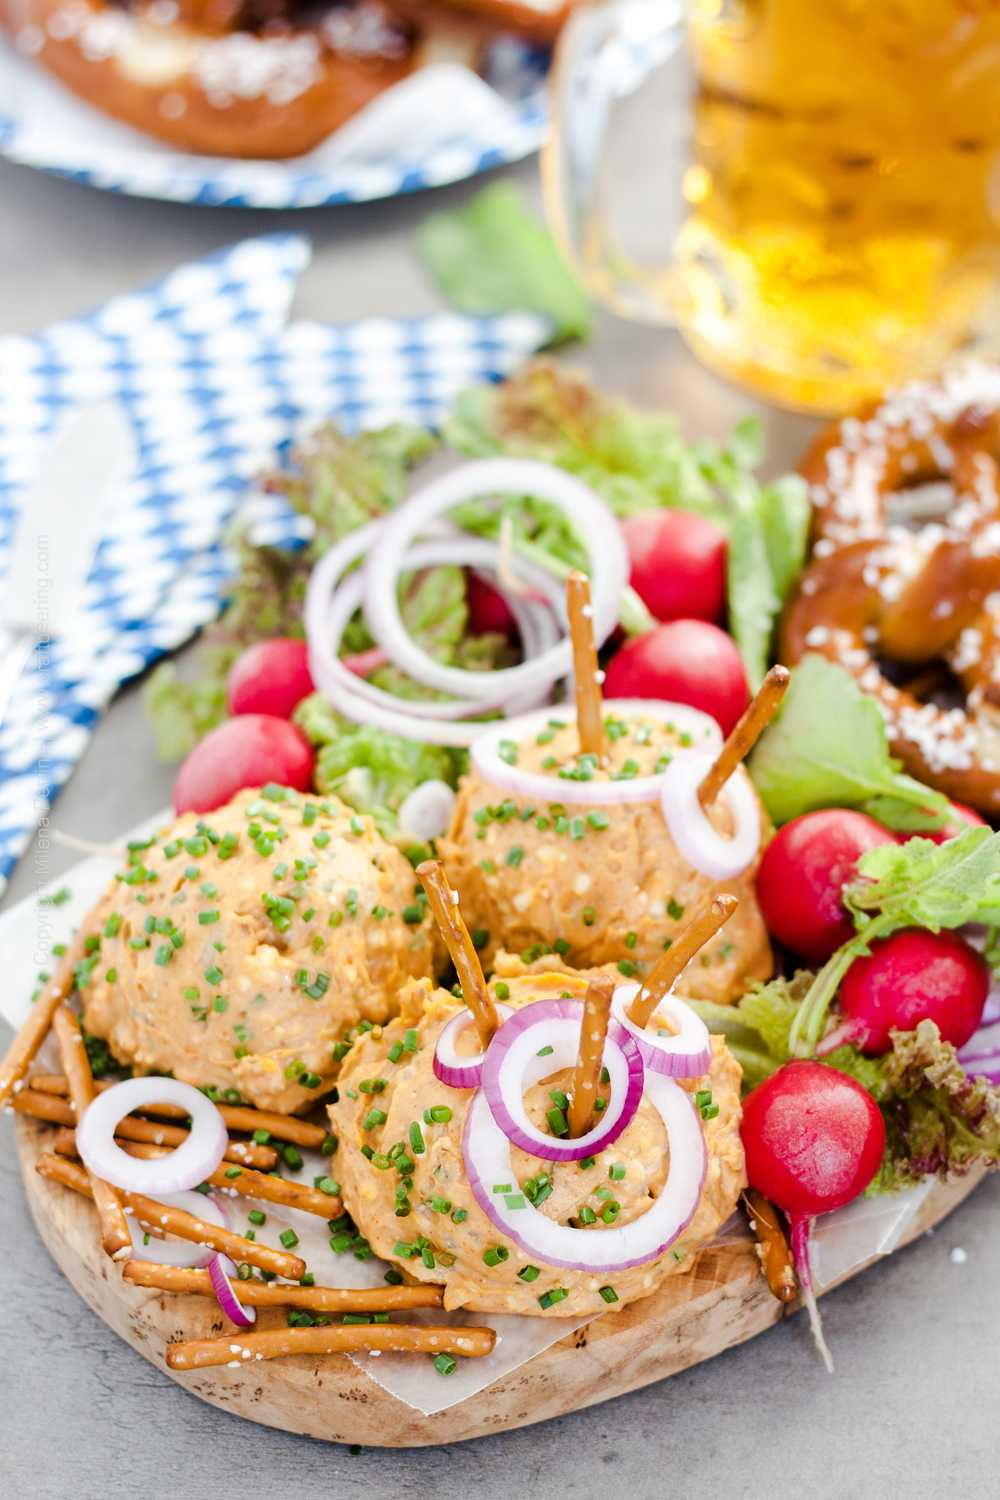 Oktobefest Brotzeit platter with soft Bavarian pretzel and obazda.